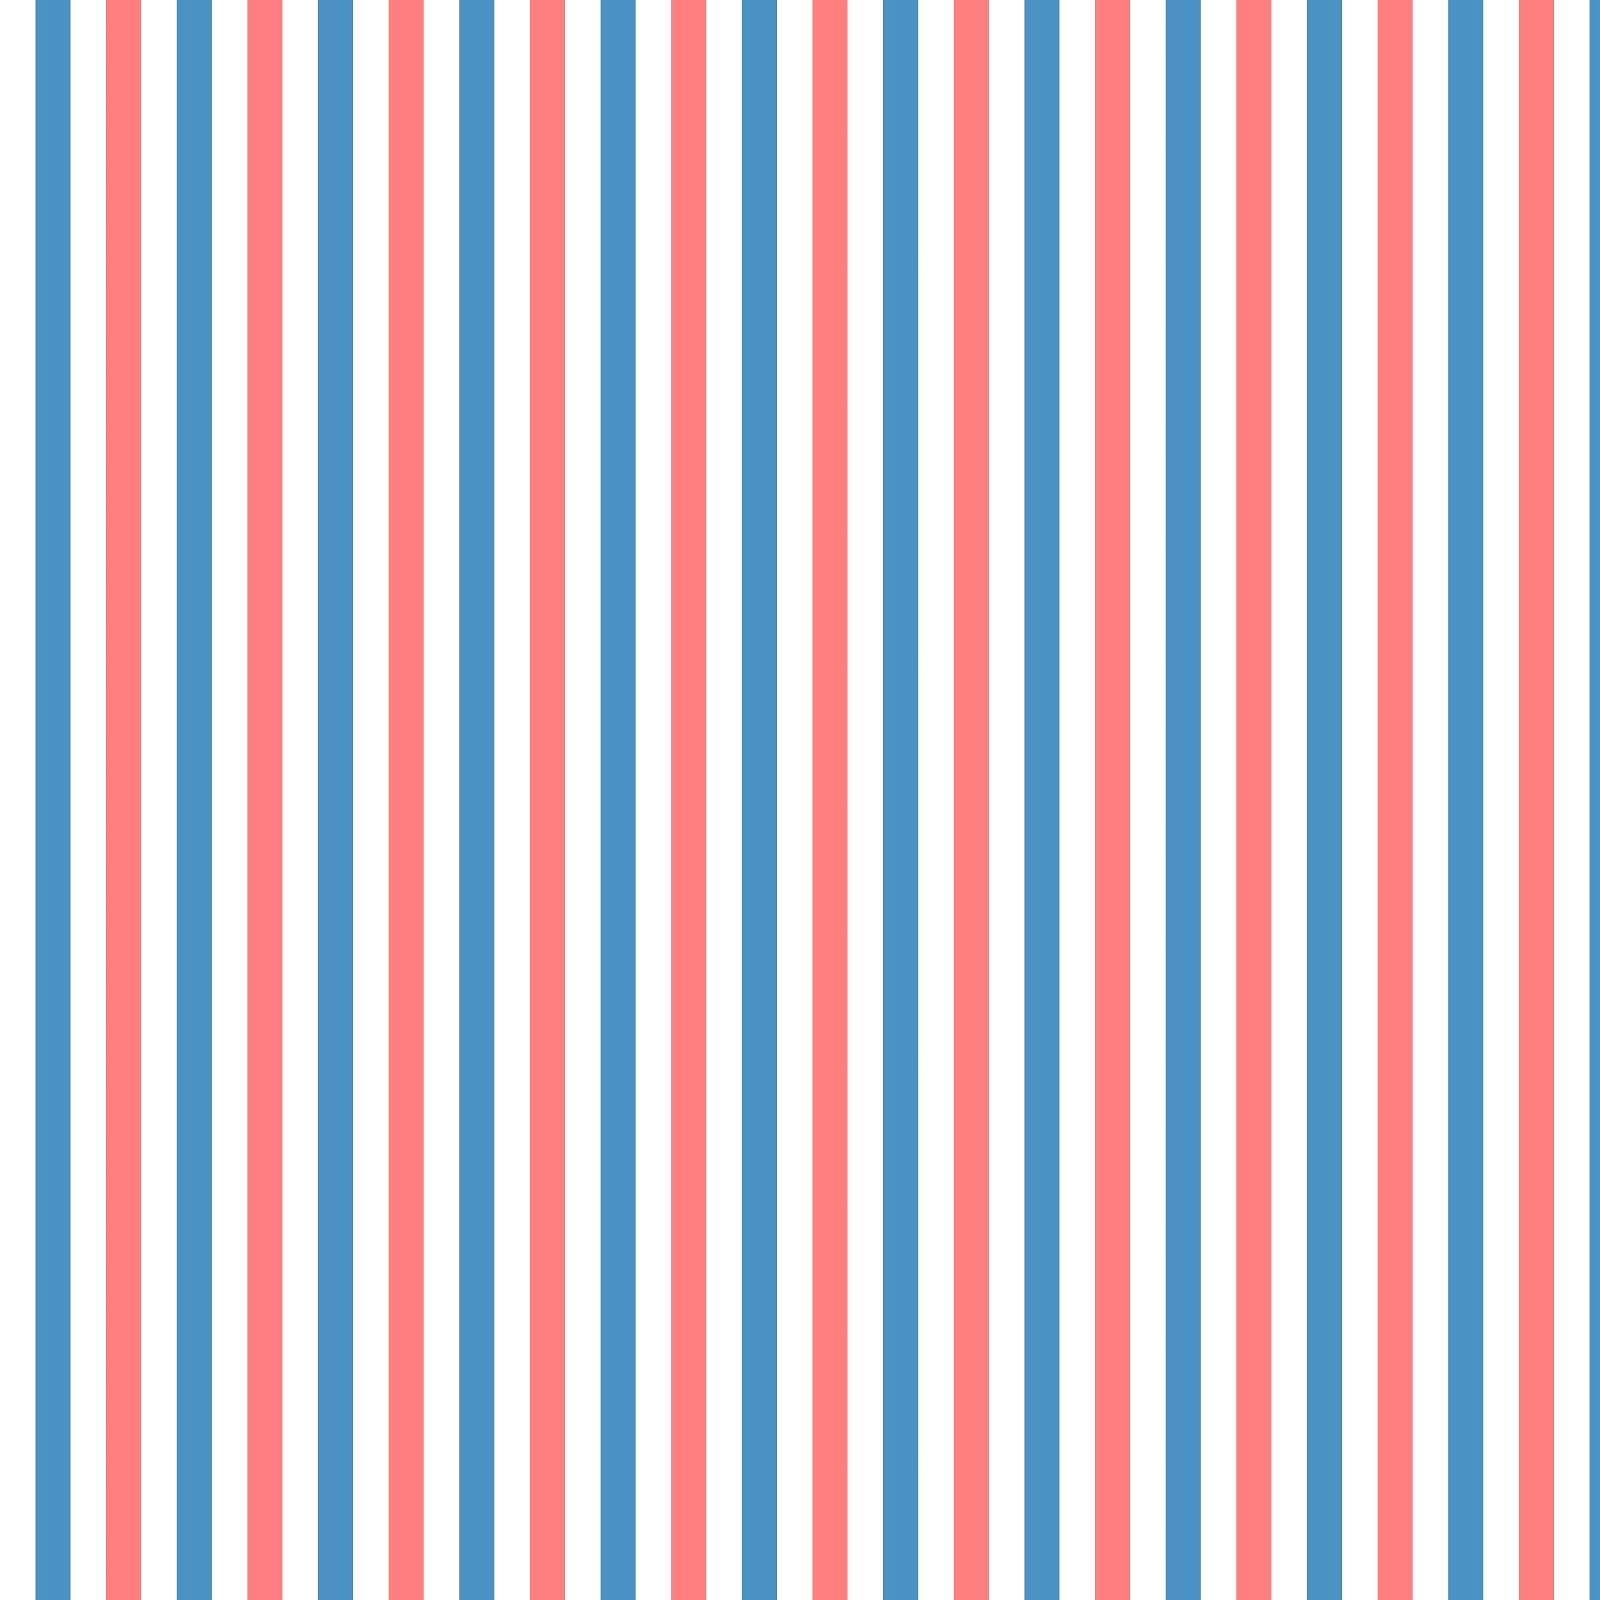 Free 3d Wallpaper For Cell Phones Download Red White And Blue Striped Wallpaper Gallery